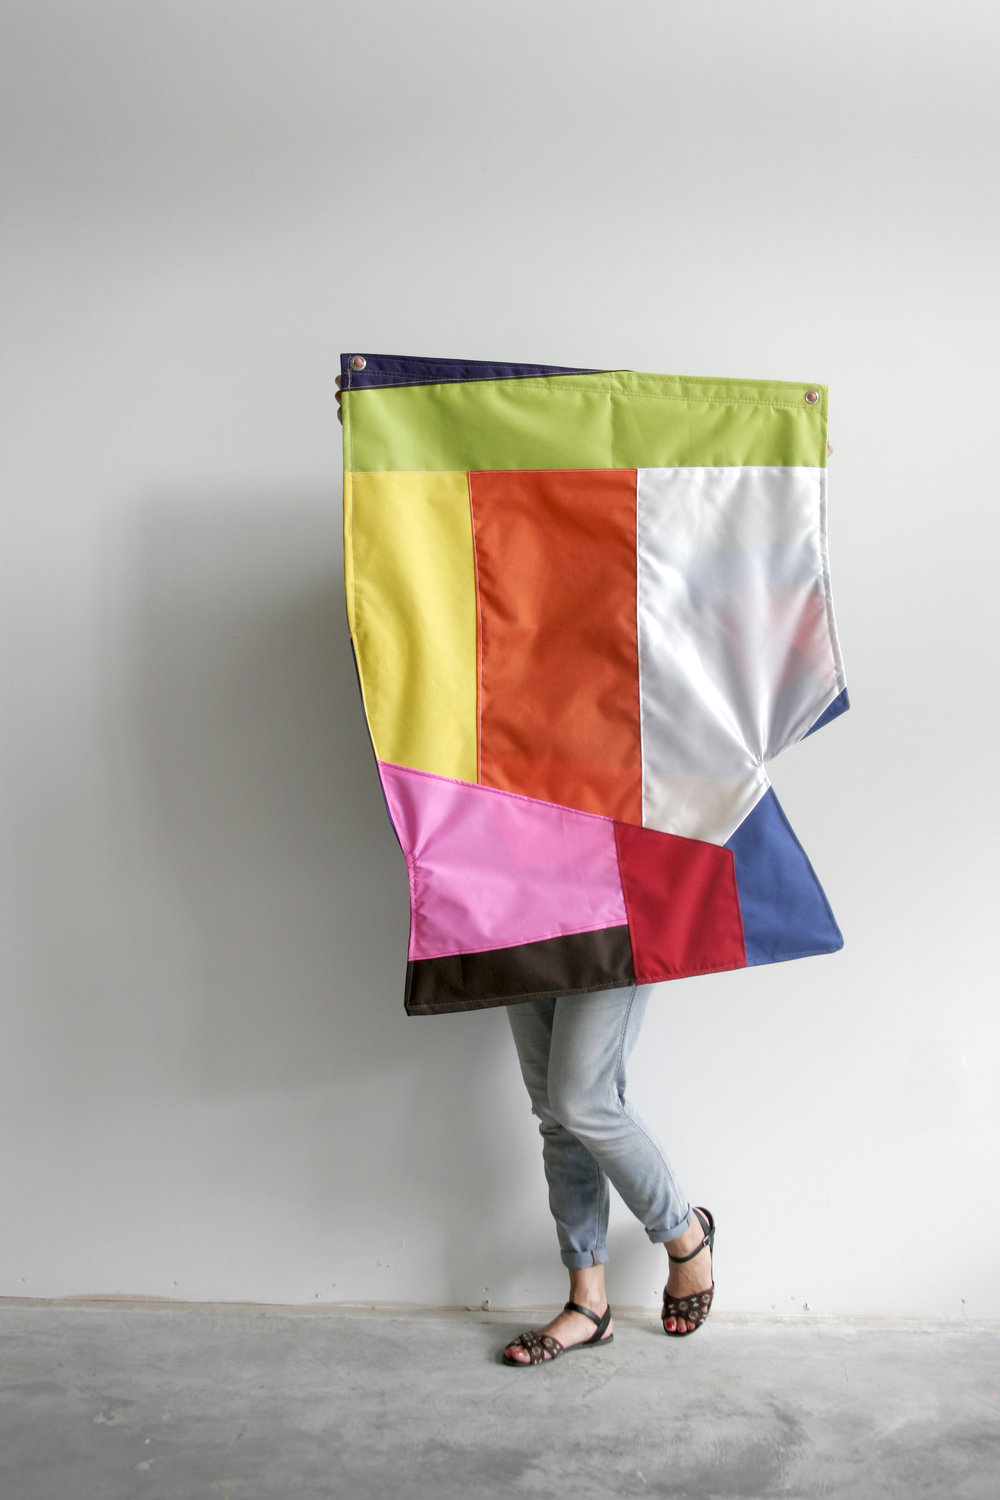 Cristina Victor - Rule Breaker or Spaz flag (side 2)nylon flag